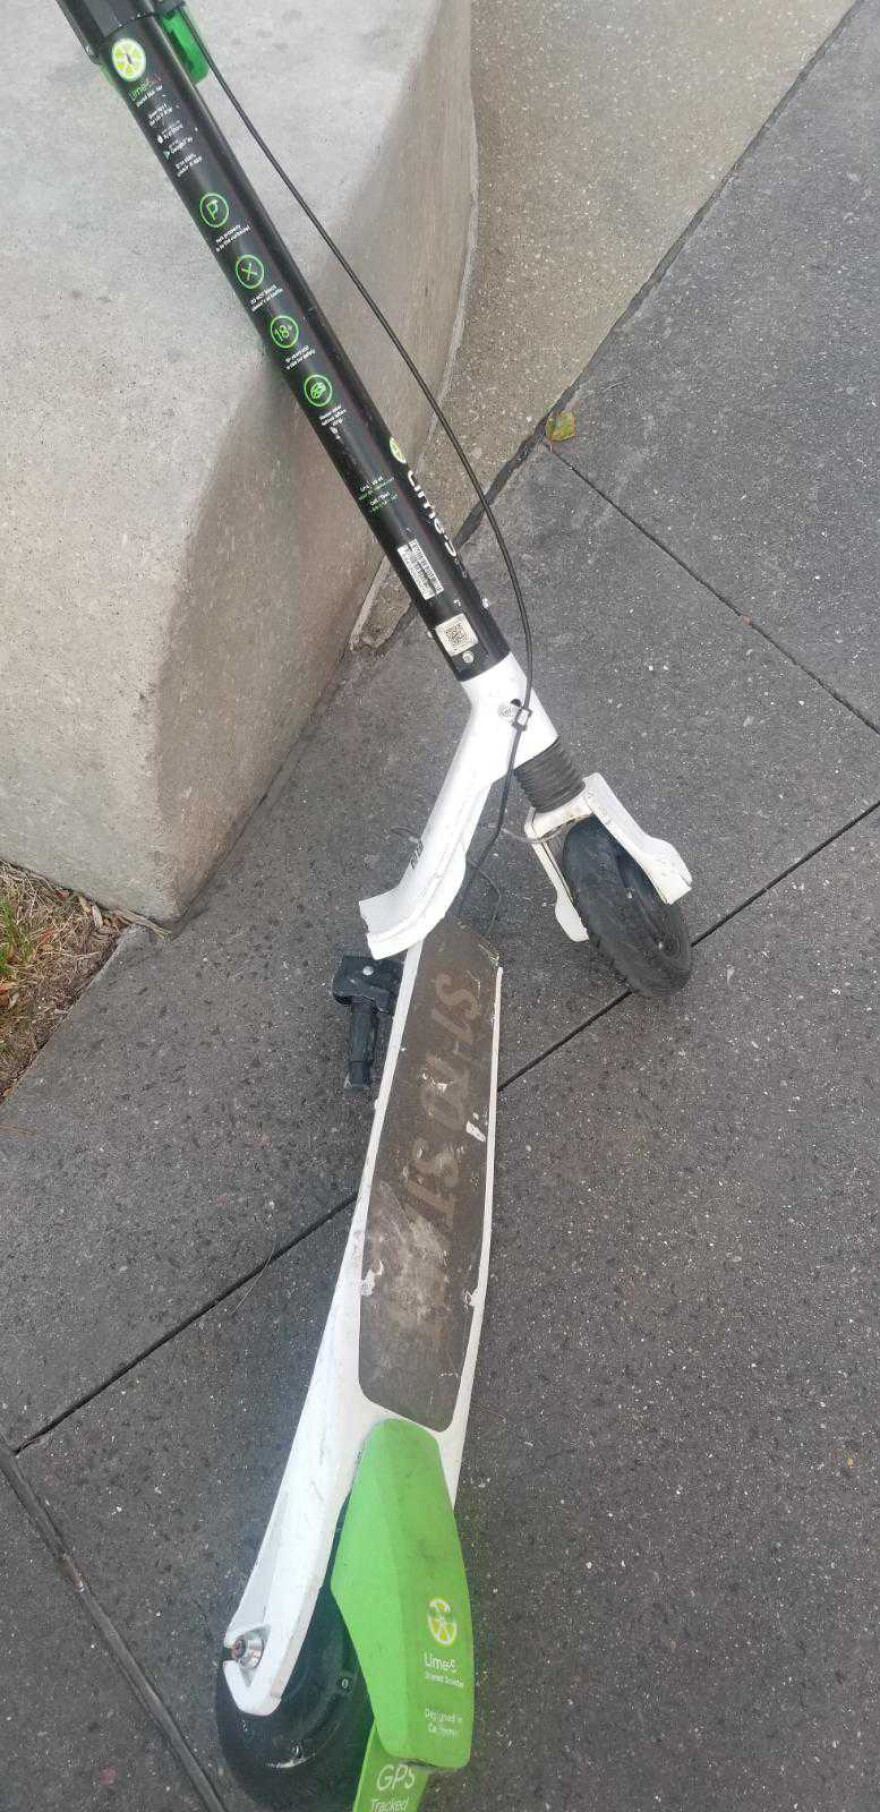 Samati Niyomchai's electric Lime scooter snapped in half while he was riding it in November 2018. The Washington University School of Medicine social worker reported the accident to the company.